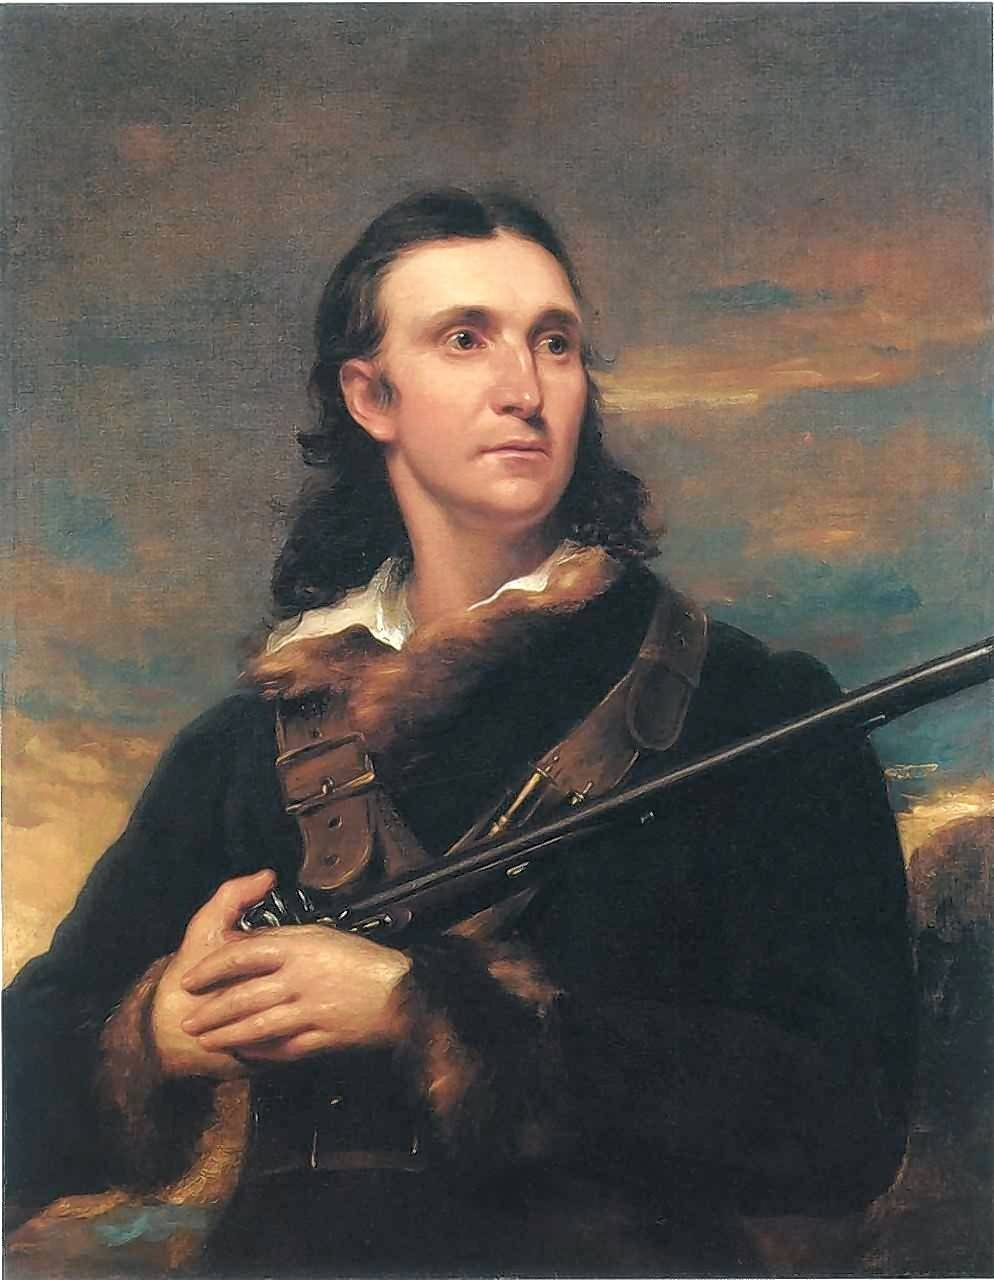 An 1826 portrait of John James Audubon, completed by John Syme, hangs in the White House.